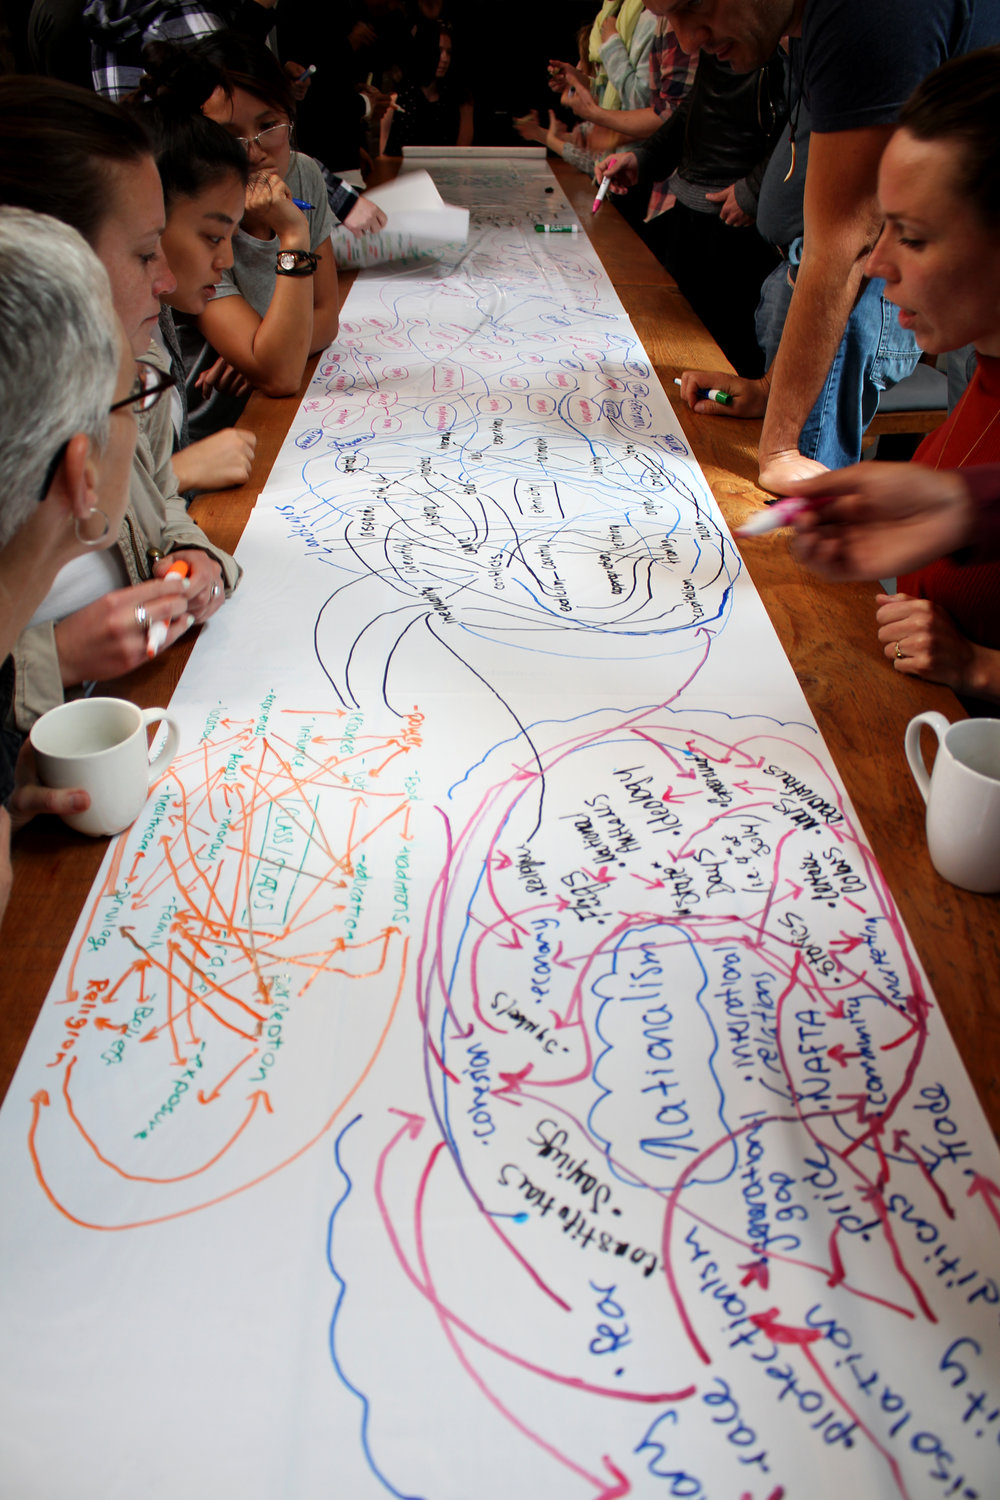 Dynamic full table systems mapping!